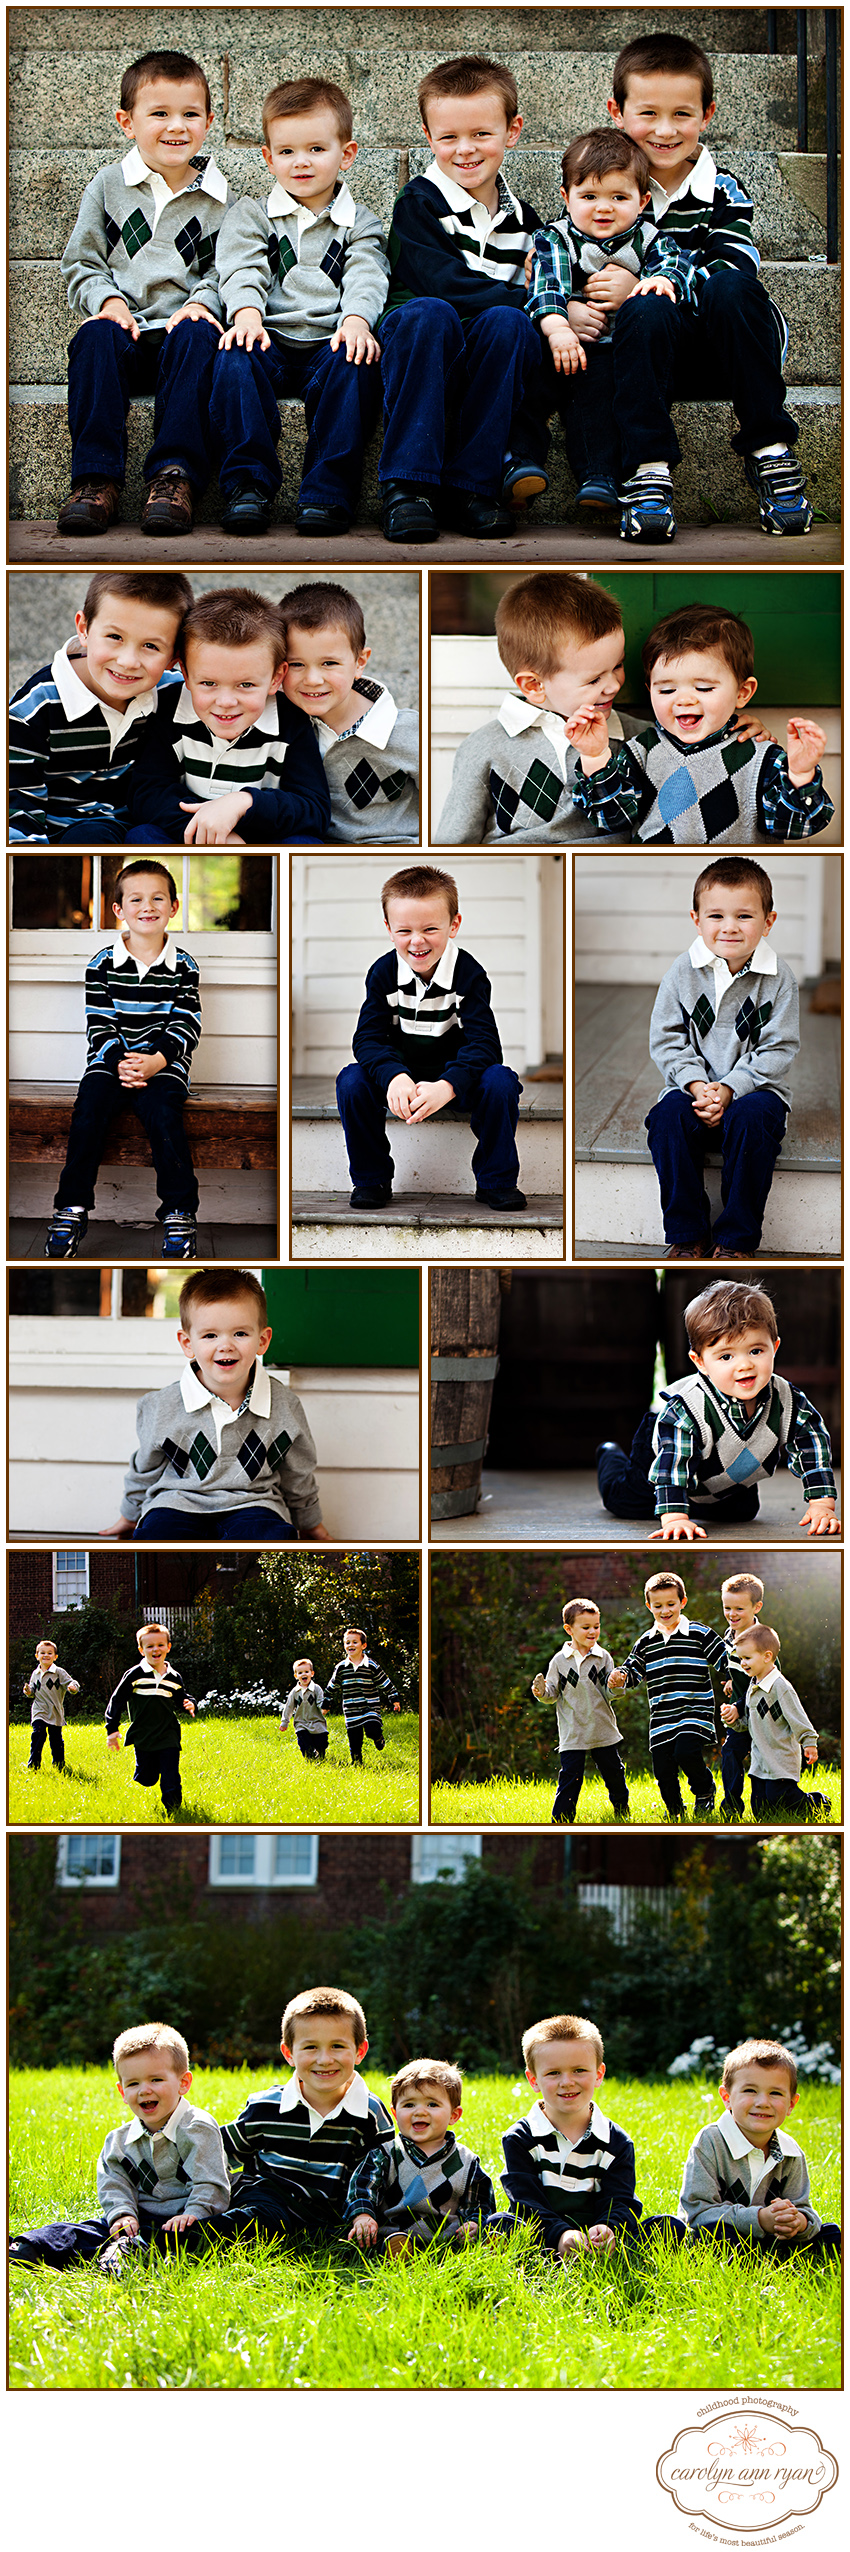 Weddington, NC Children's Portrait Photographer